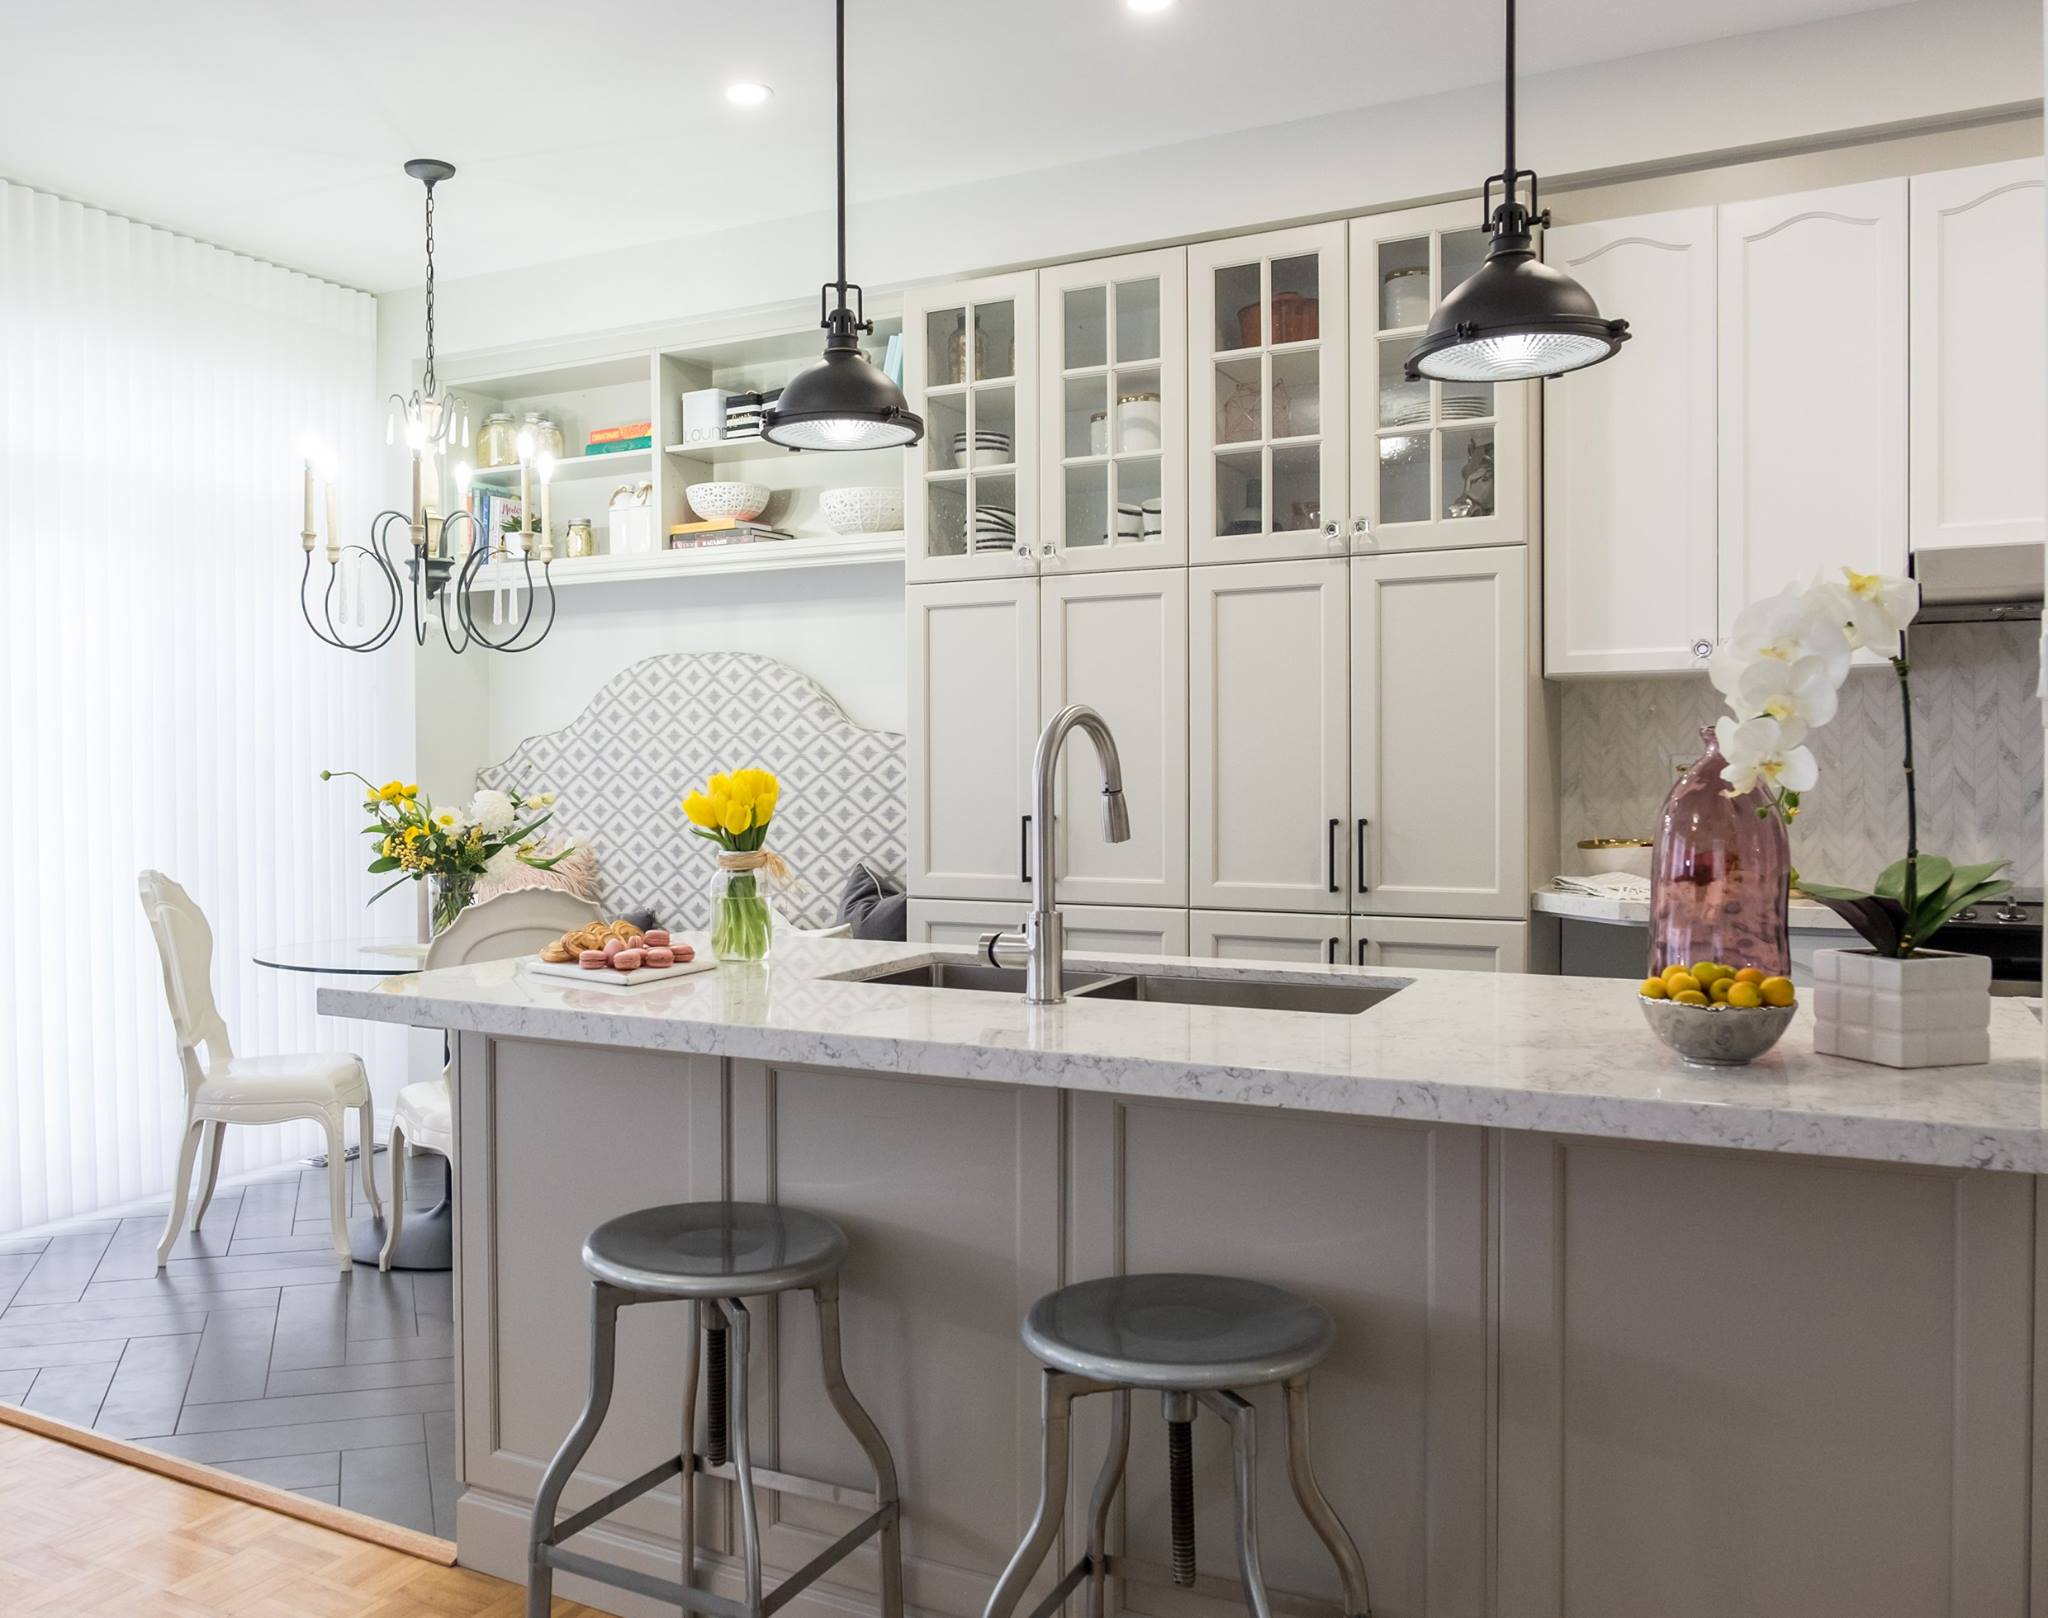 Property Brothers Kitchens Room Image And Wallper - Property brothers kitchen remodels